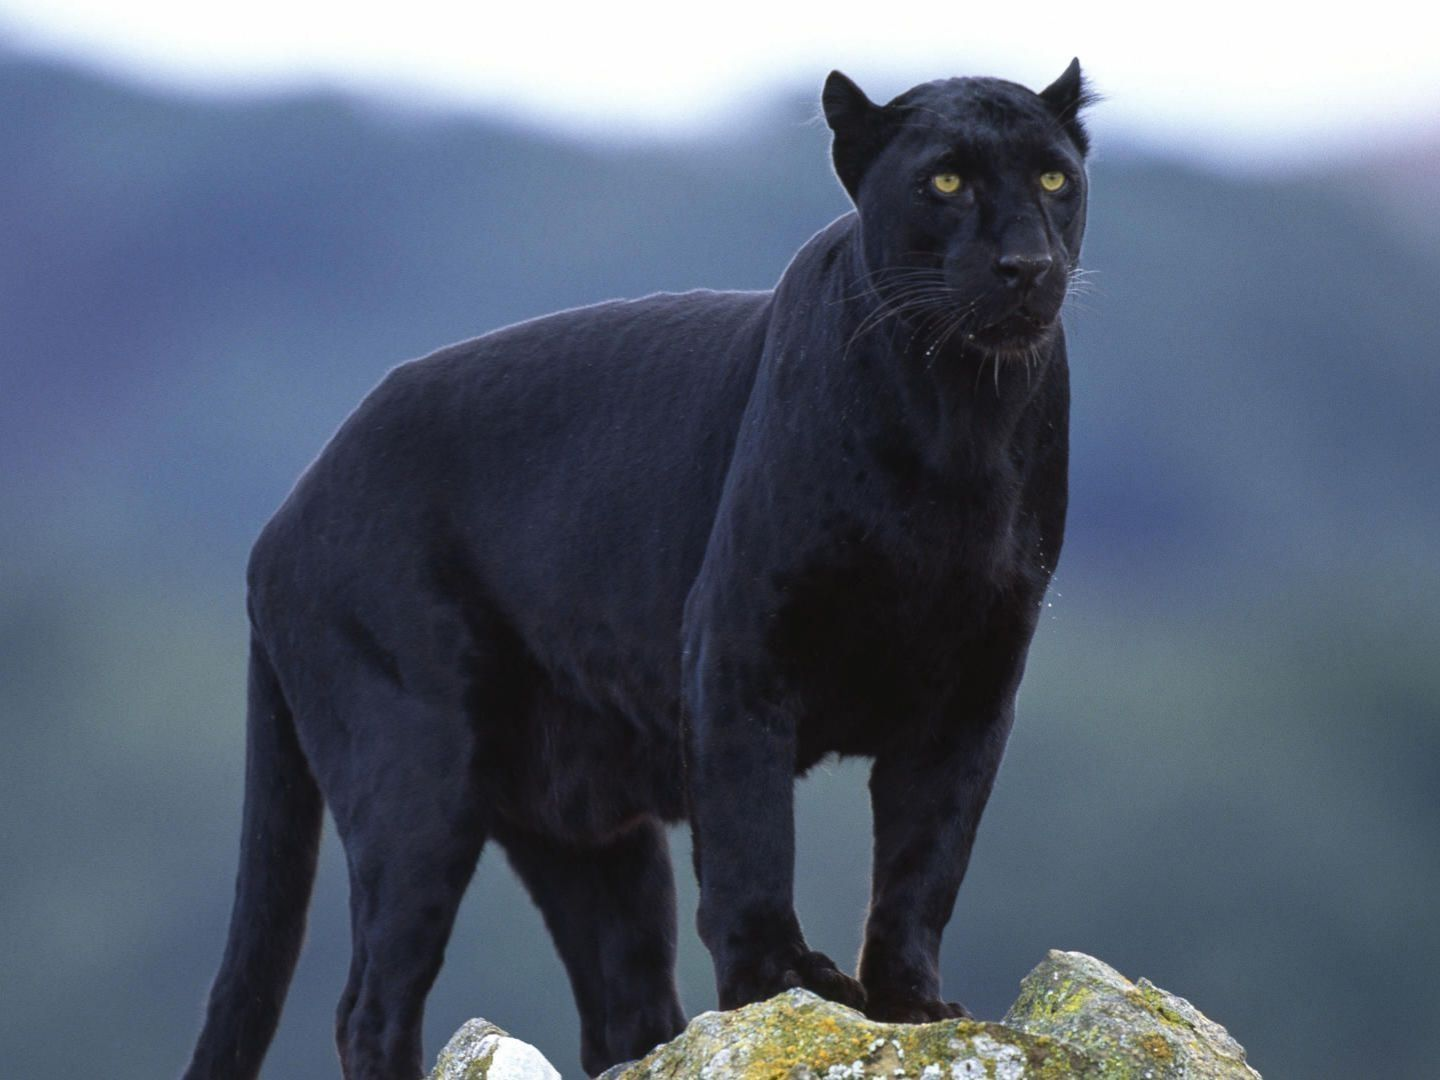 look at this amazing big cat... black panther, black